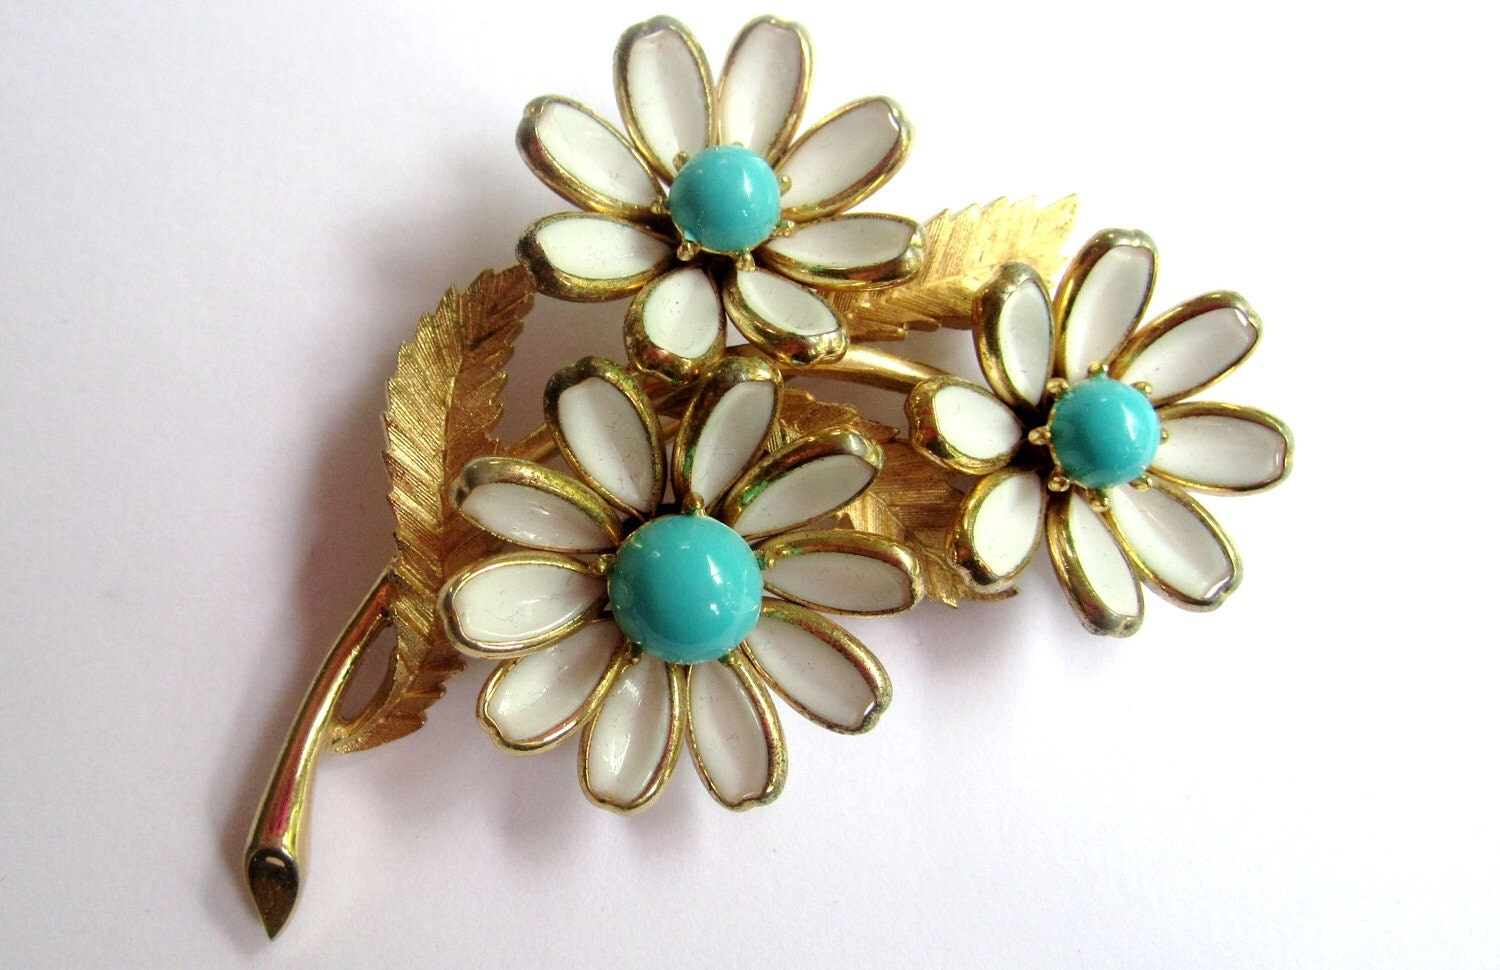 Crown Trifari Brooch Daisy Flower Poured Glass 1950s Vintage